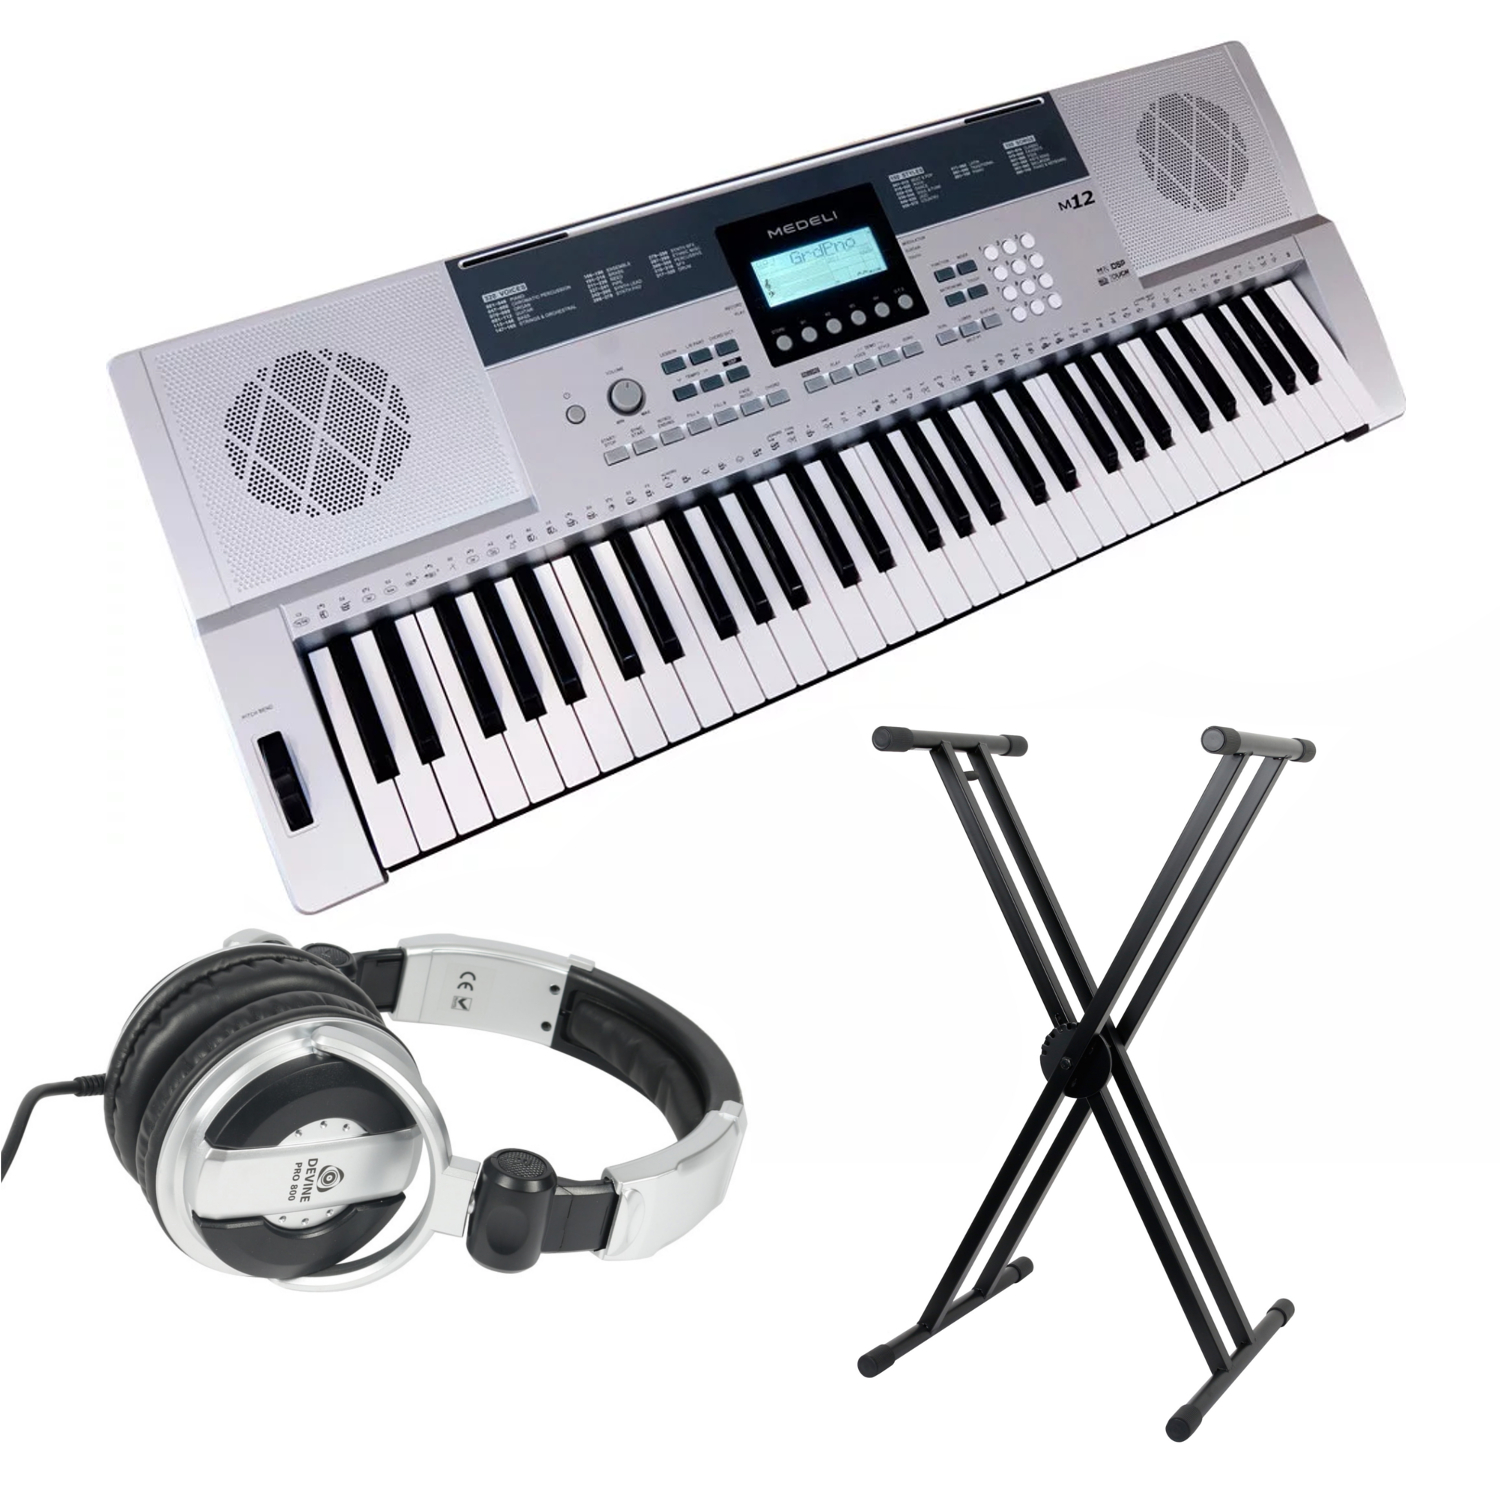 Medeli M12 starter set with stand and headphones